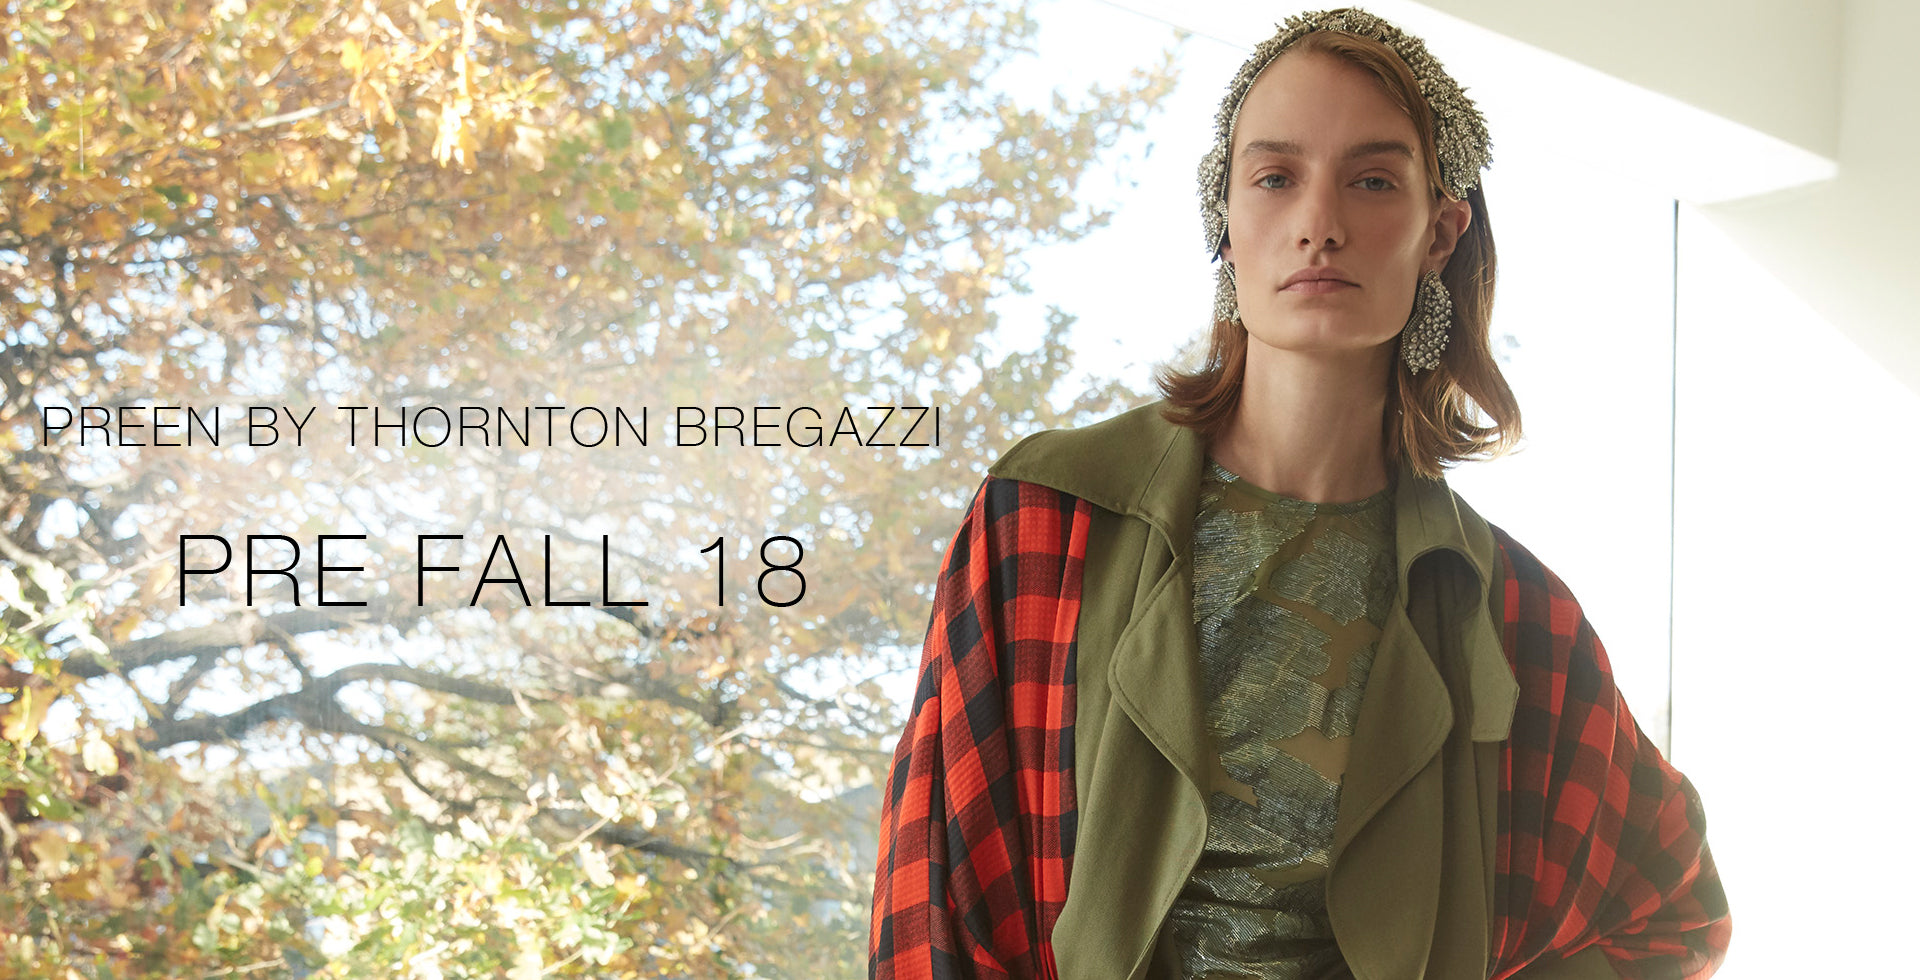 preen by thornton bregazzi pre fall 18